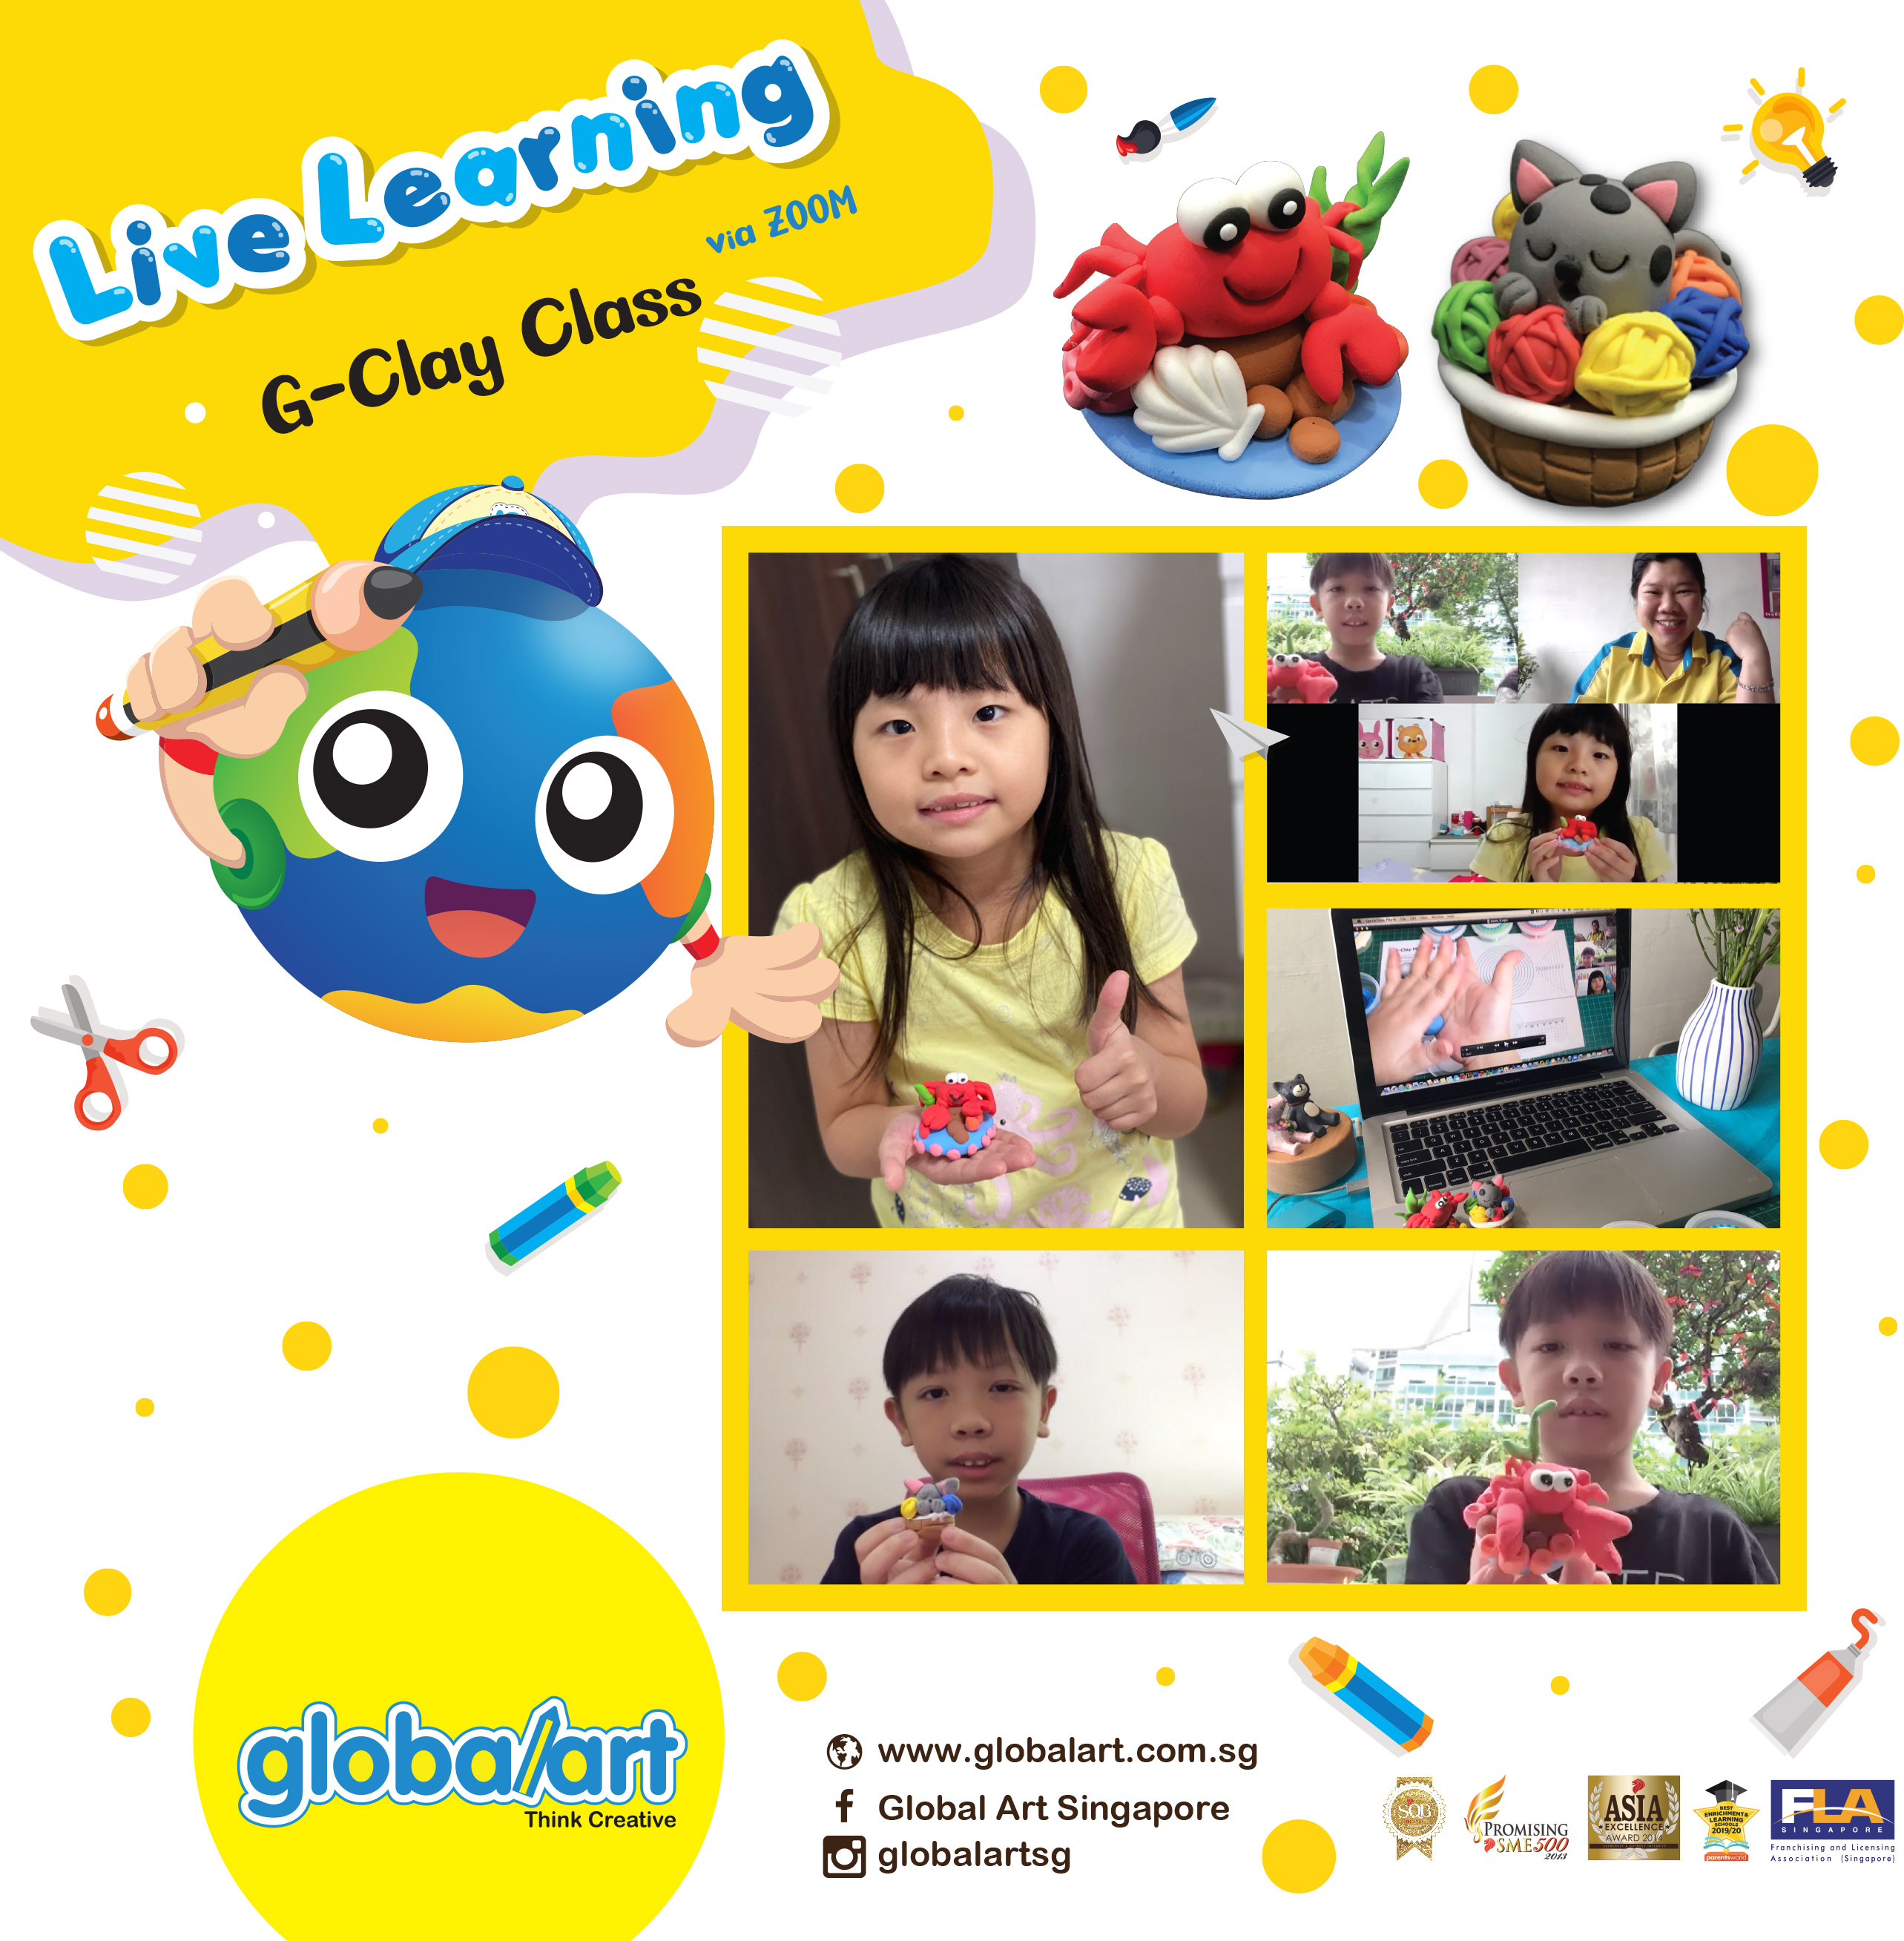 Live Learning G-clay lesson Poster